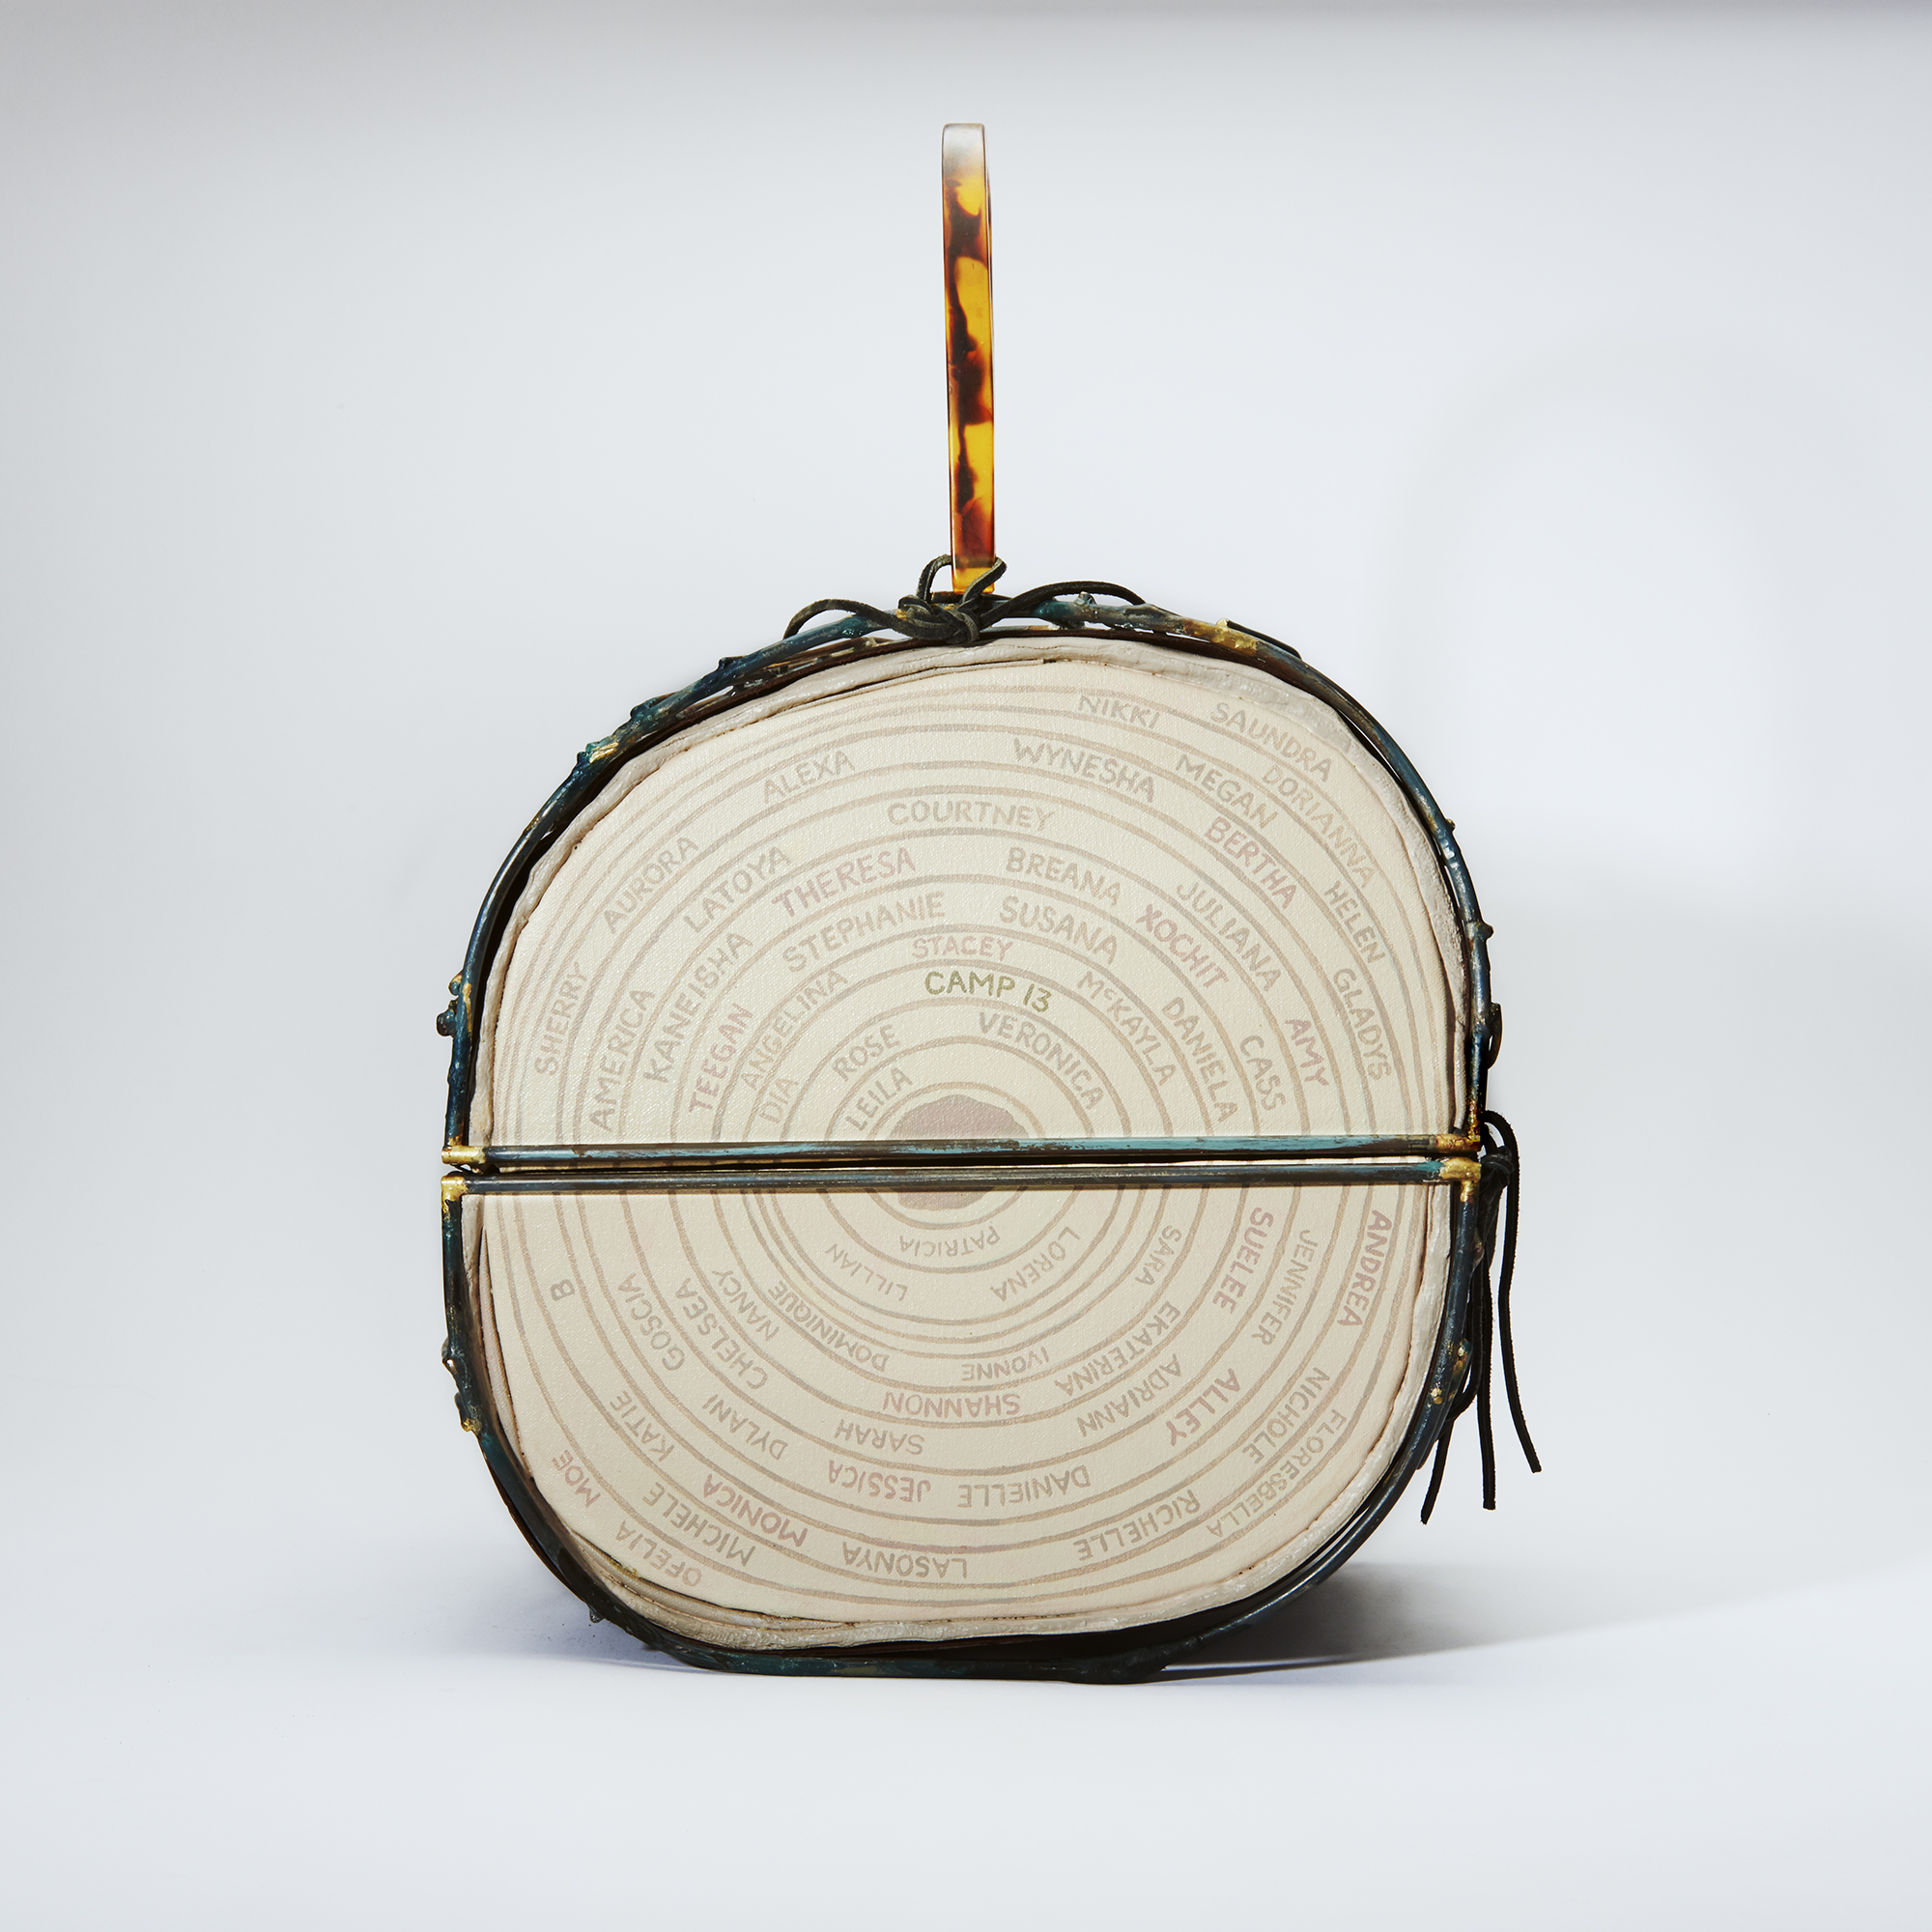 Valise 1 - Fire Line